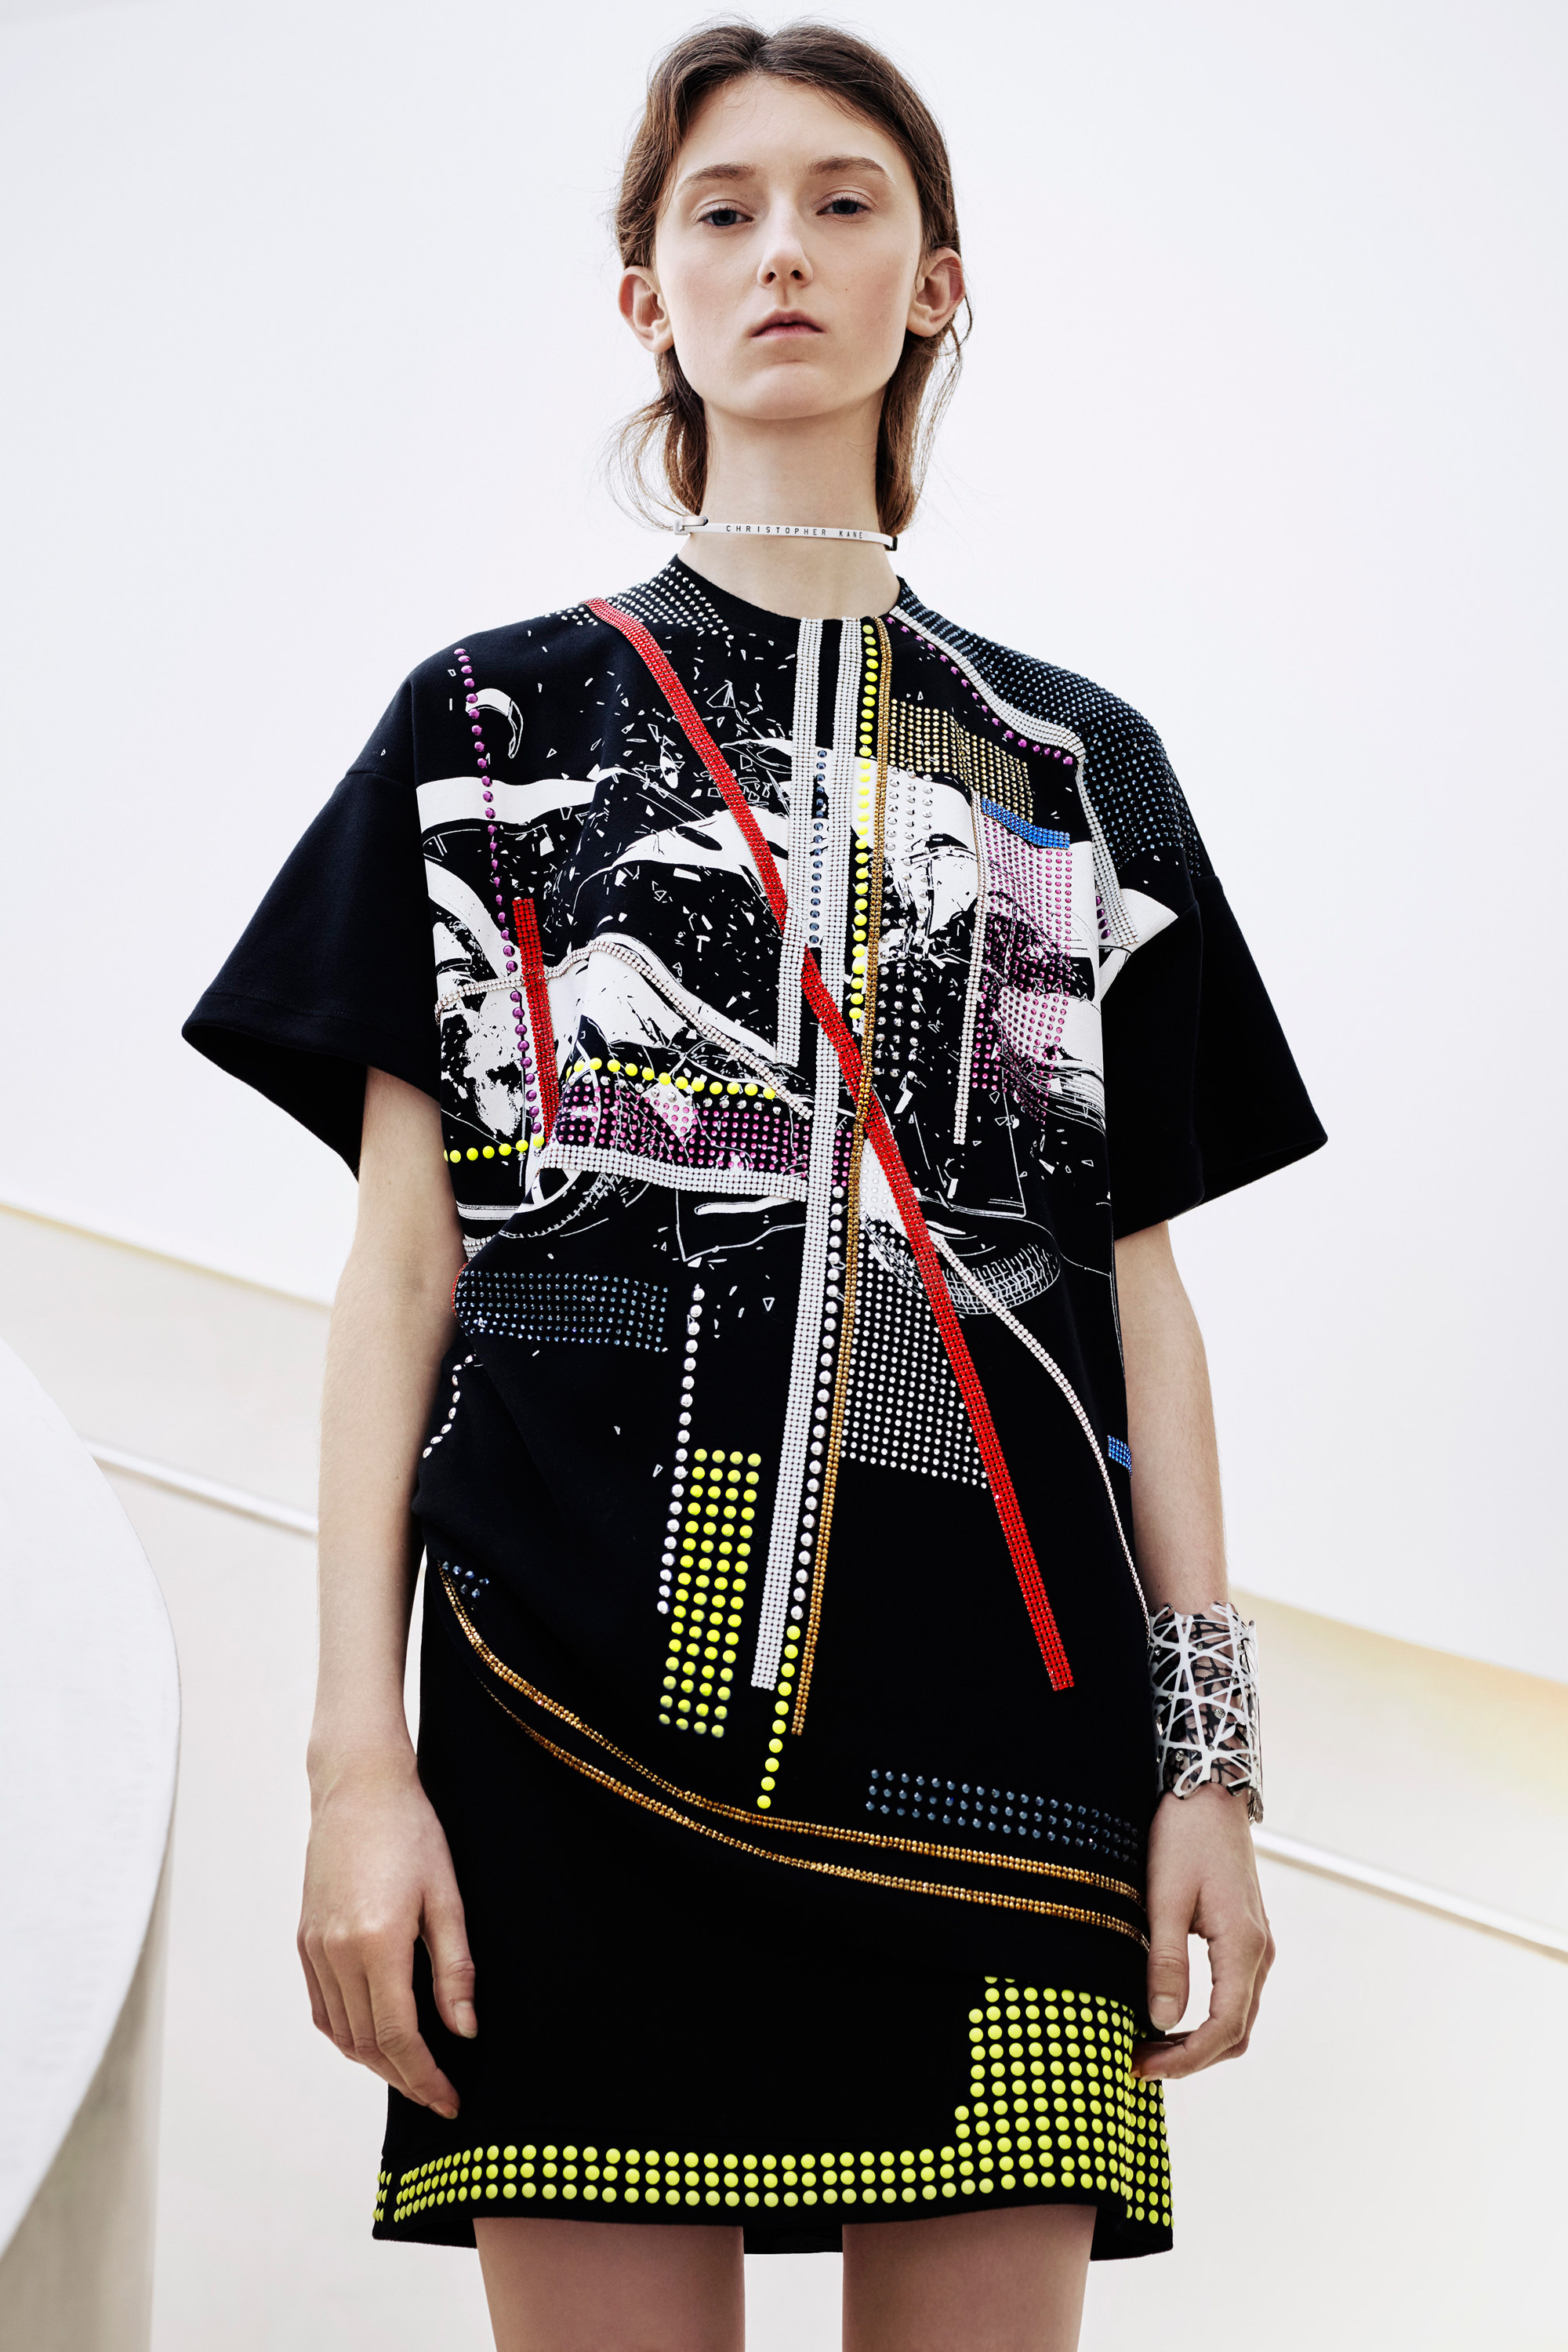 christopher-kane-pre-fall-2016-lookbook-26.jpg